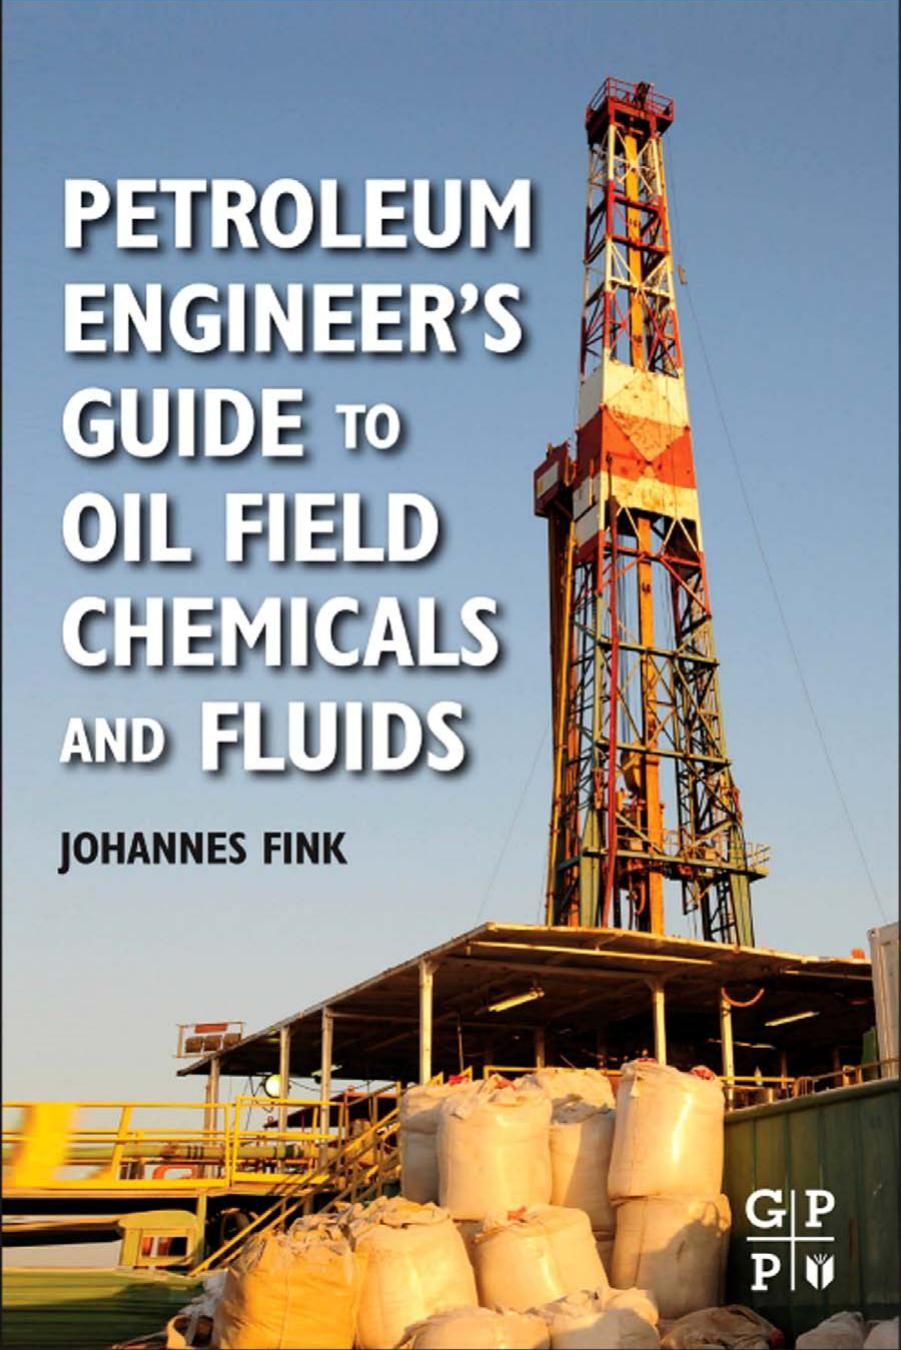 I'm selling Petroleum Engineer's Guide to Oil Field